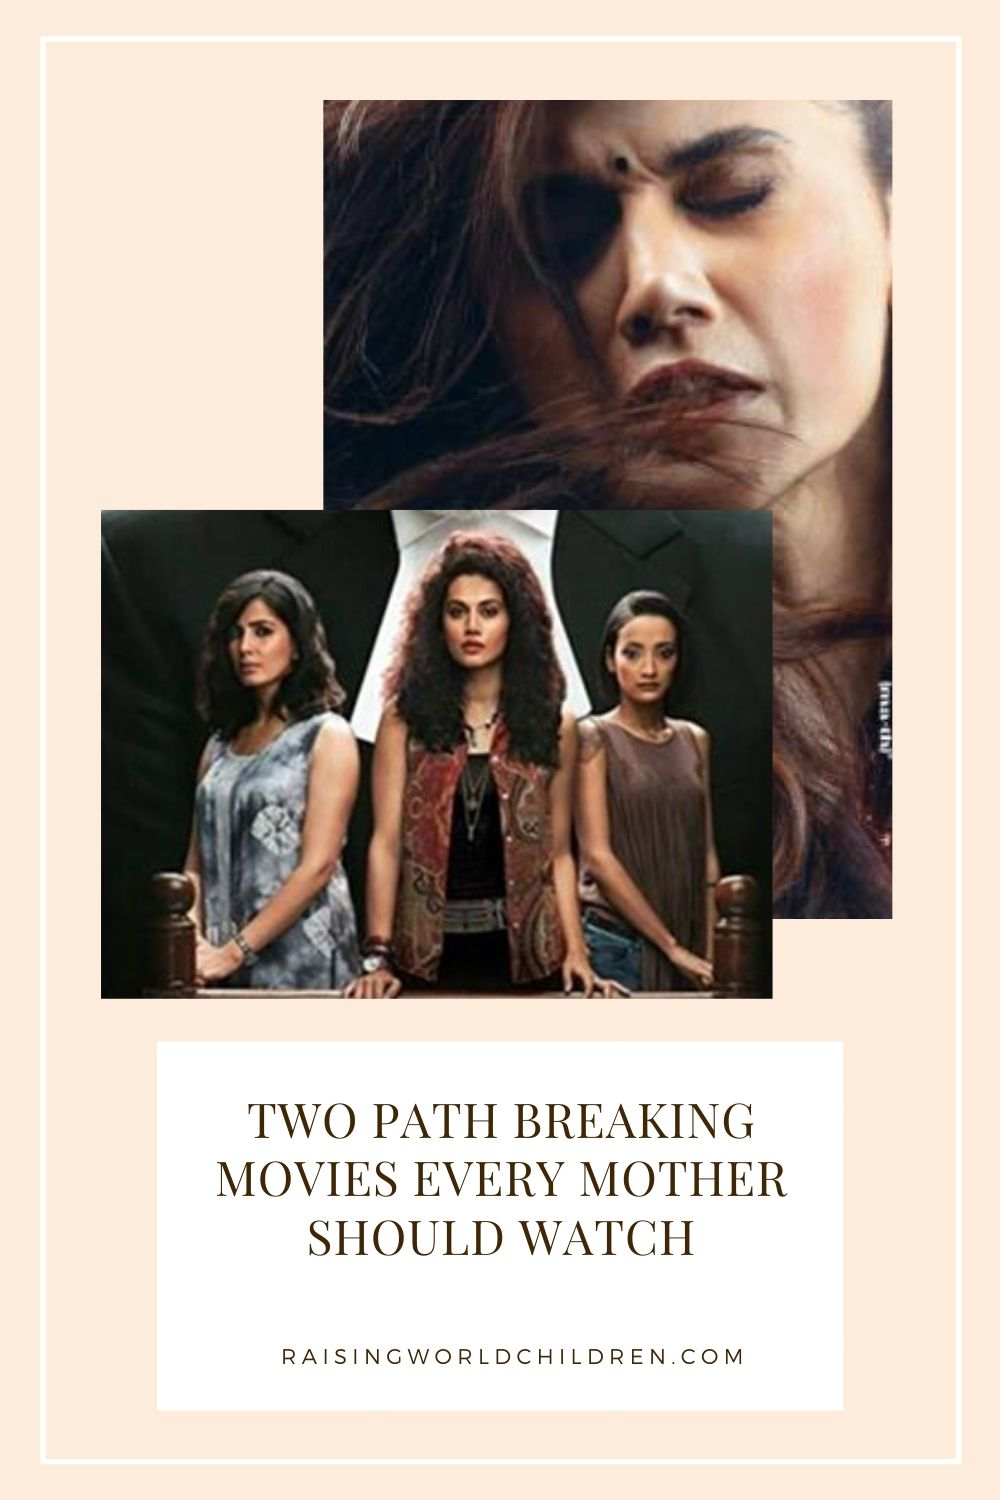 Two path breaking movies every Mother MUST watch